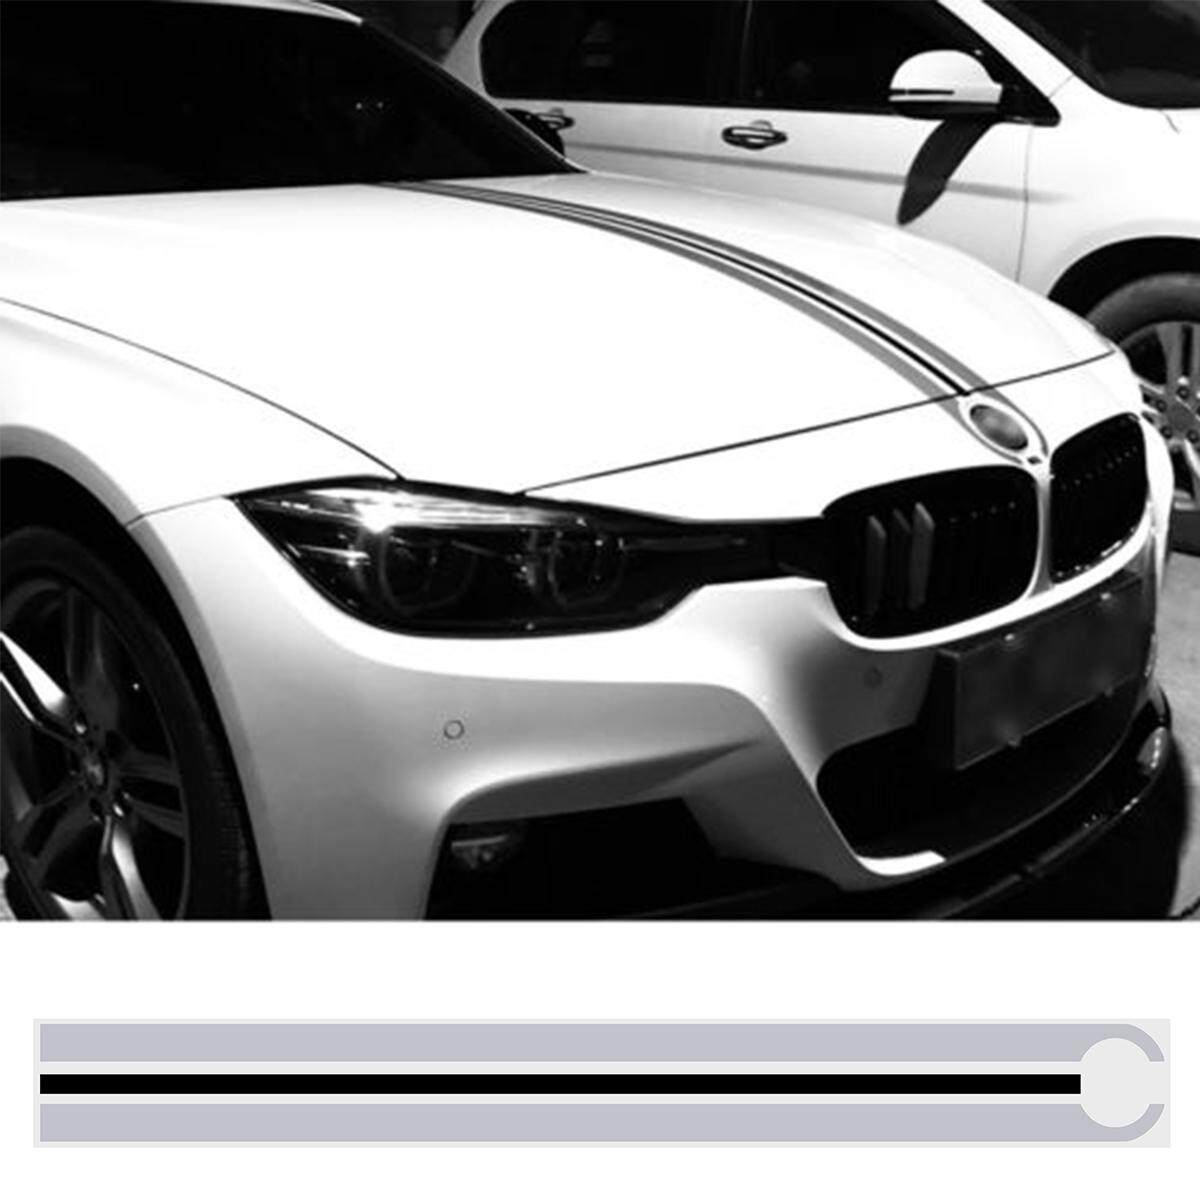 Product details of hood bonnet stripes decals stickers trim for bmw e46 e36 e90 f30 e39 e60 f10 g30 colorgray black